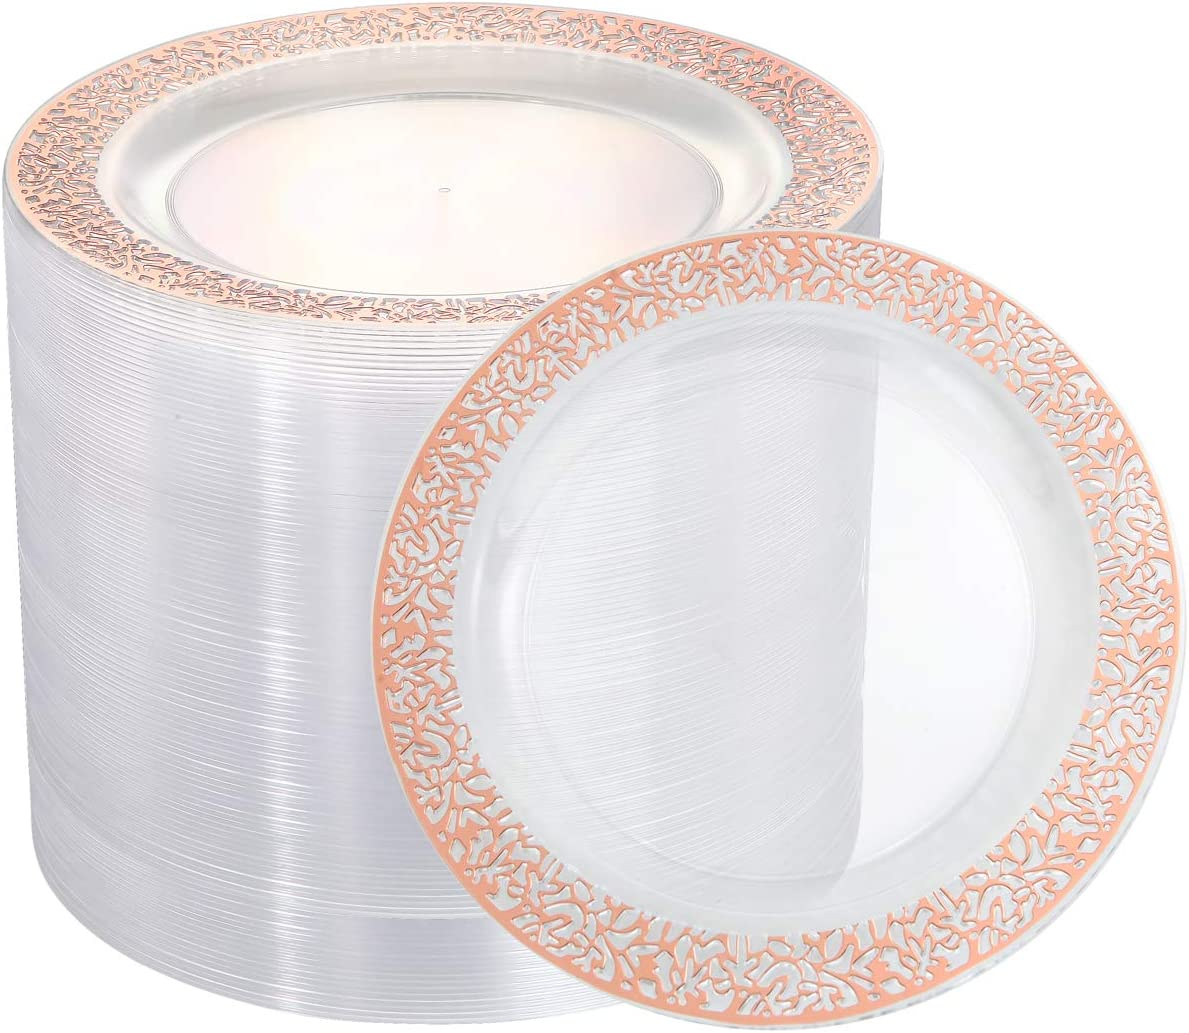 """102 Pieces Rose Gold Plastic Lunch Plates, 9"""" Clear Disposable Dinner Plates with Rose Gold Lace Rim, Ideal for Big Parties or Wedding"""